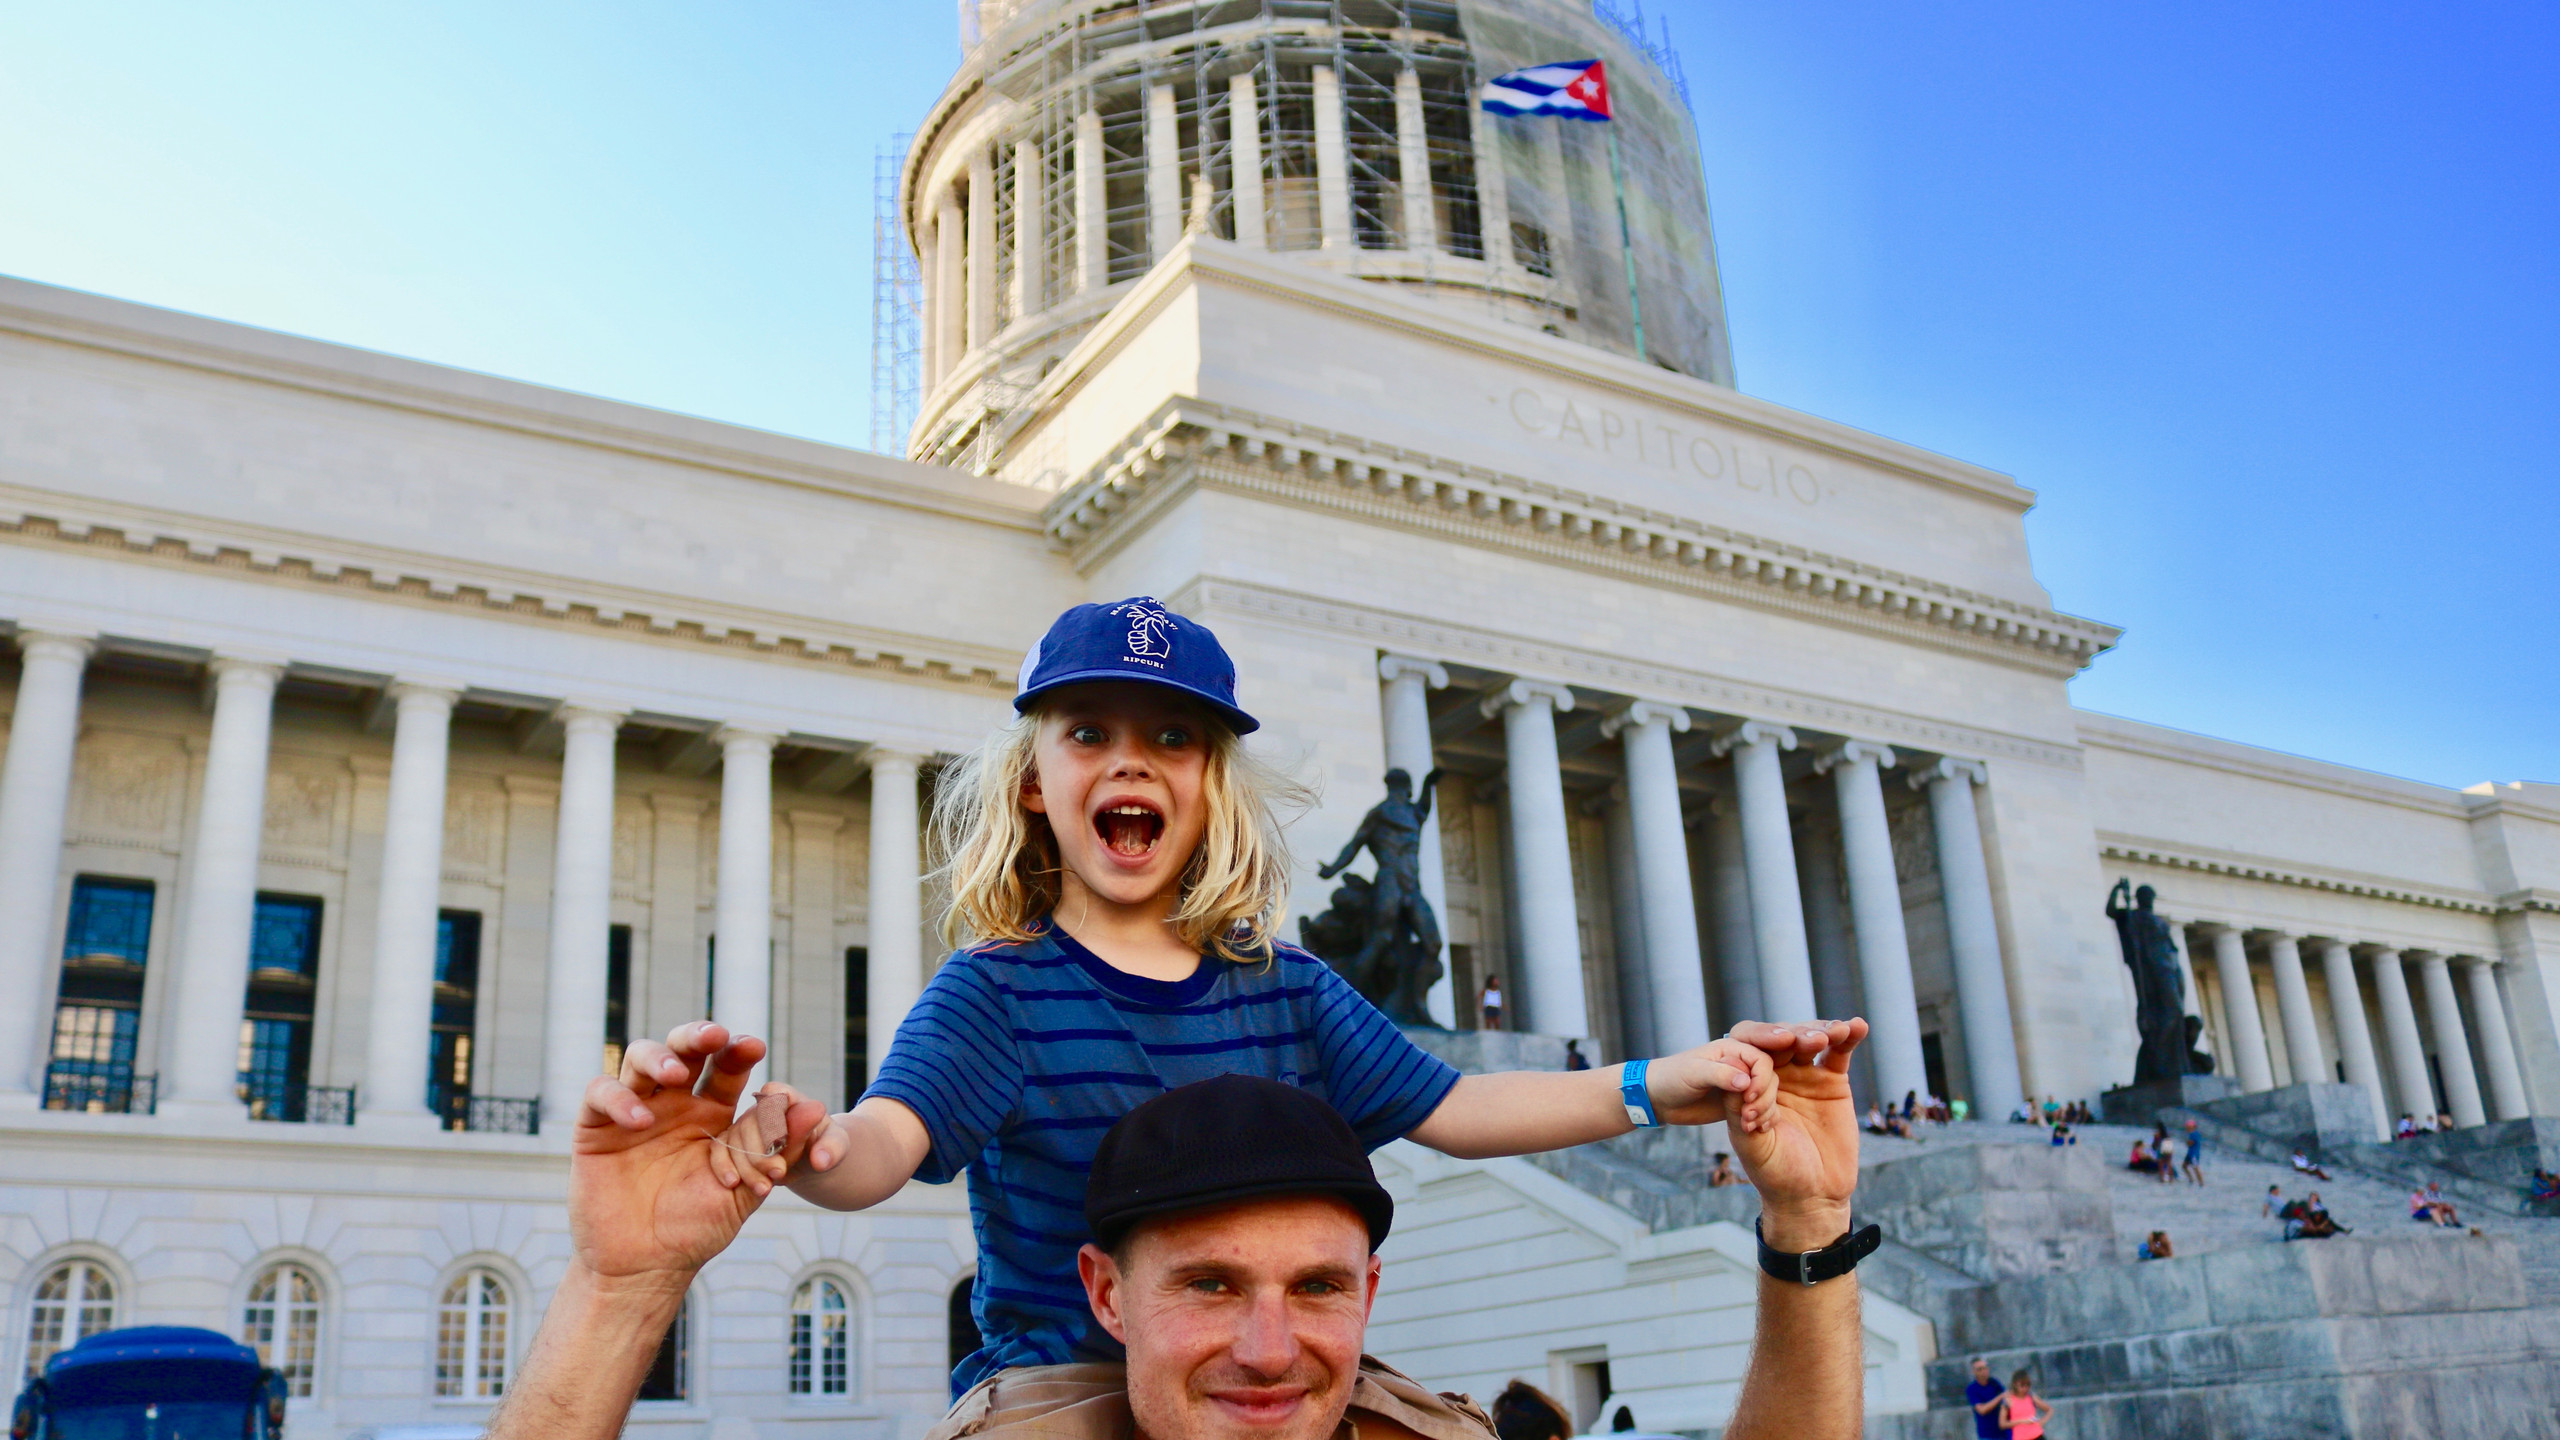 Little boy in blue striped shirt and blue baseball cap sitting on his dad's shoulders in front of El Capitolo in Havana.